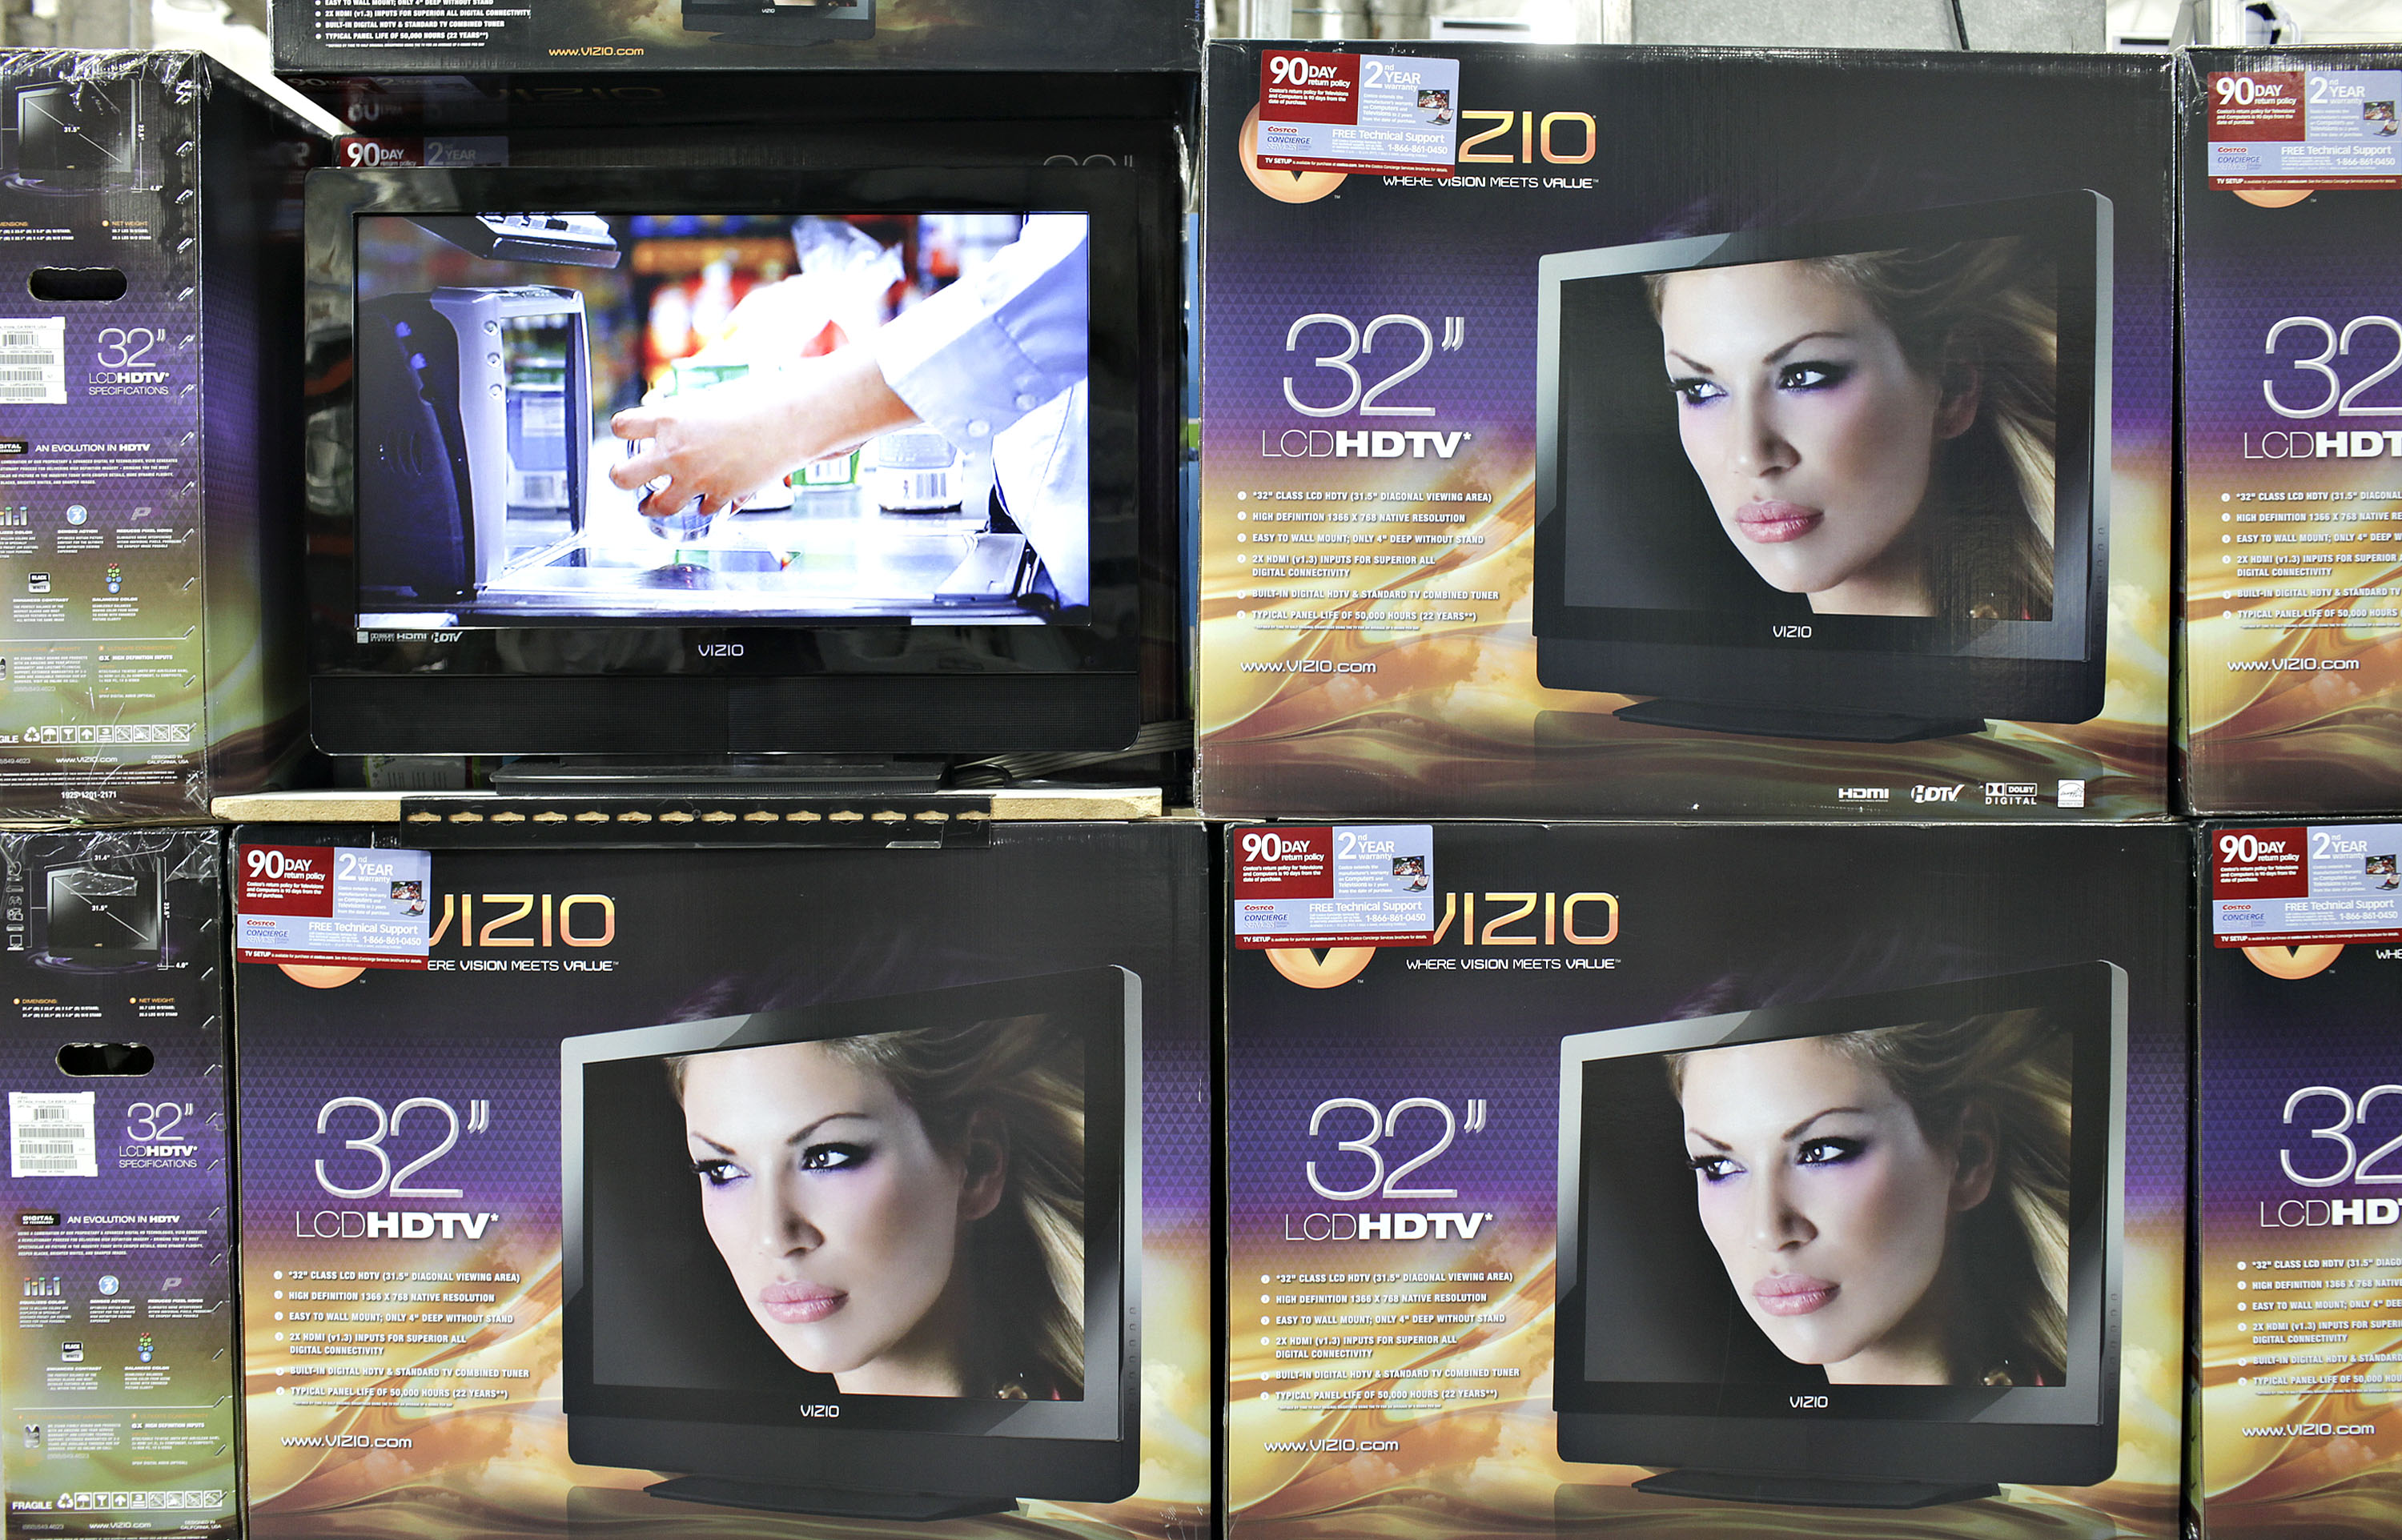 ViZio flat screen televisions sit on display inside a Costco store in Queens, New York, U.S., on Thursday, May 28, 2009.